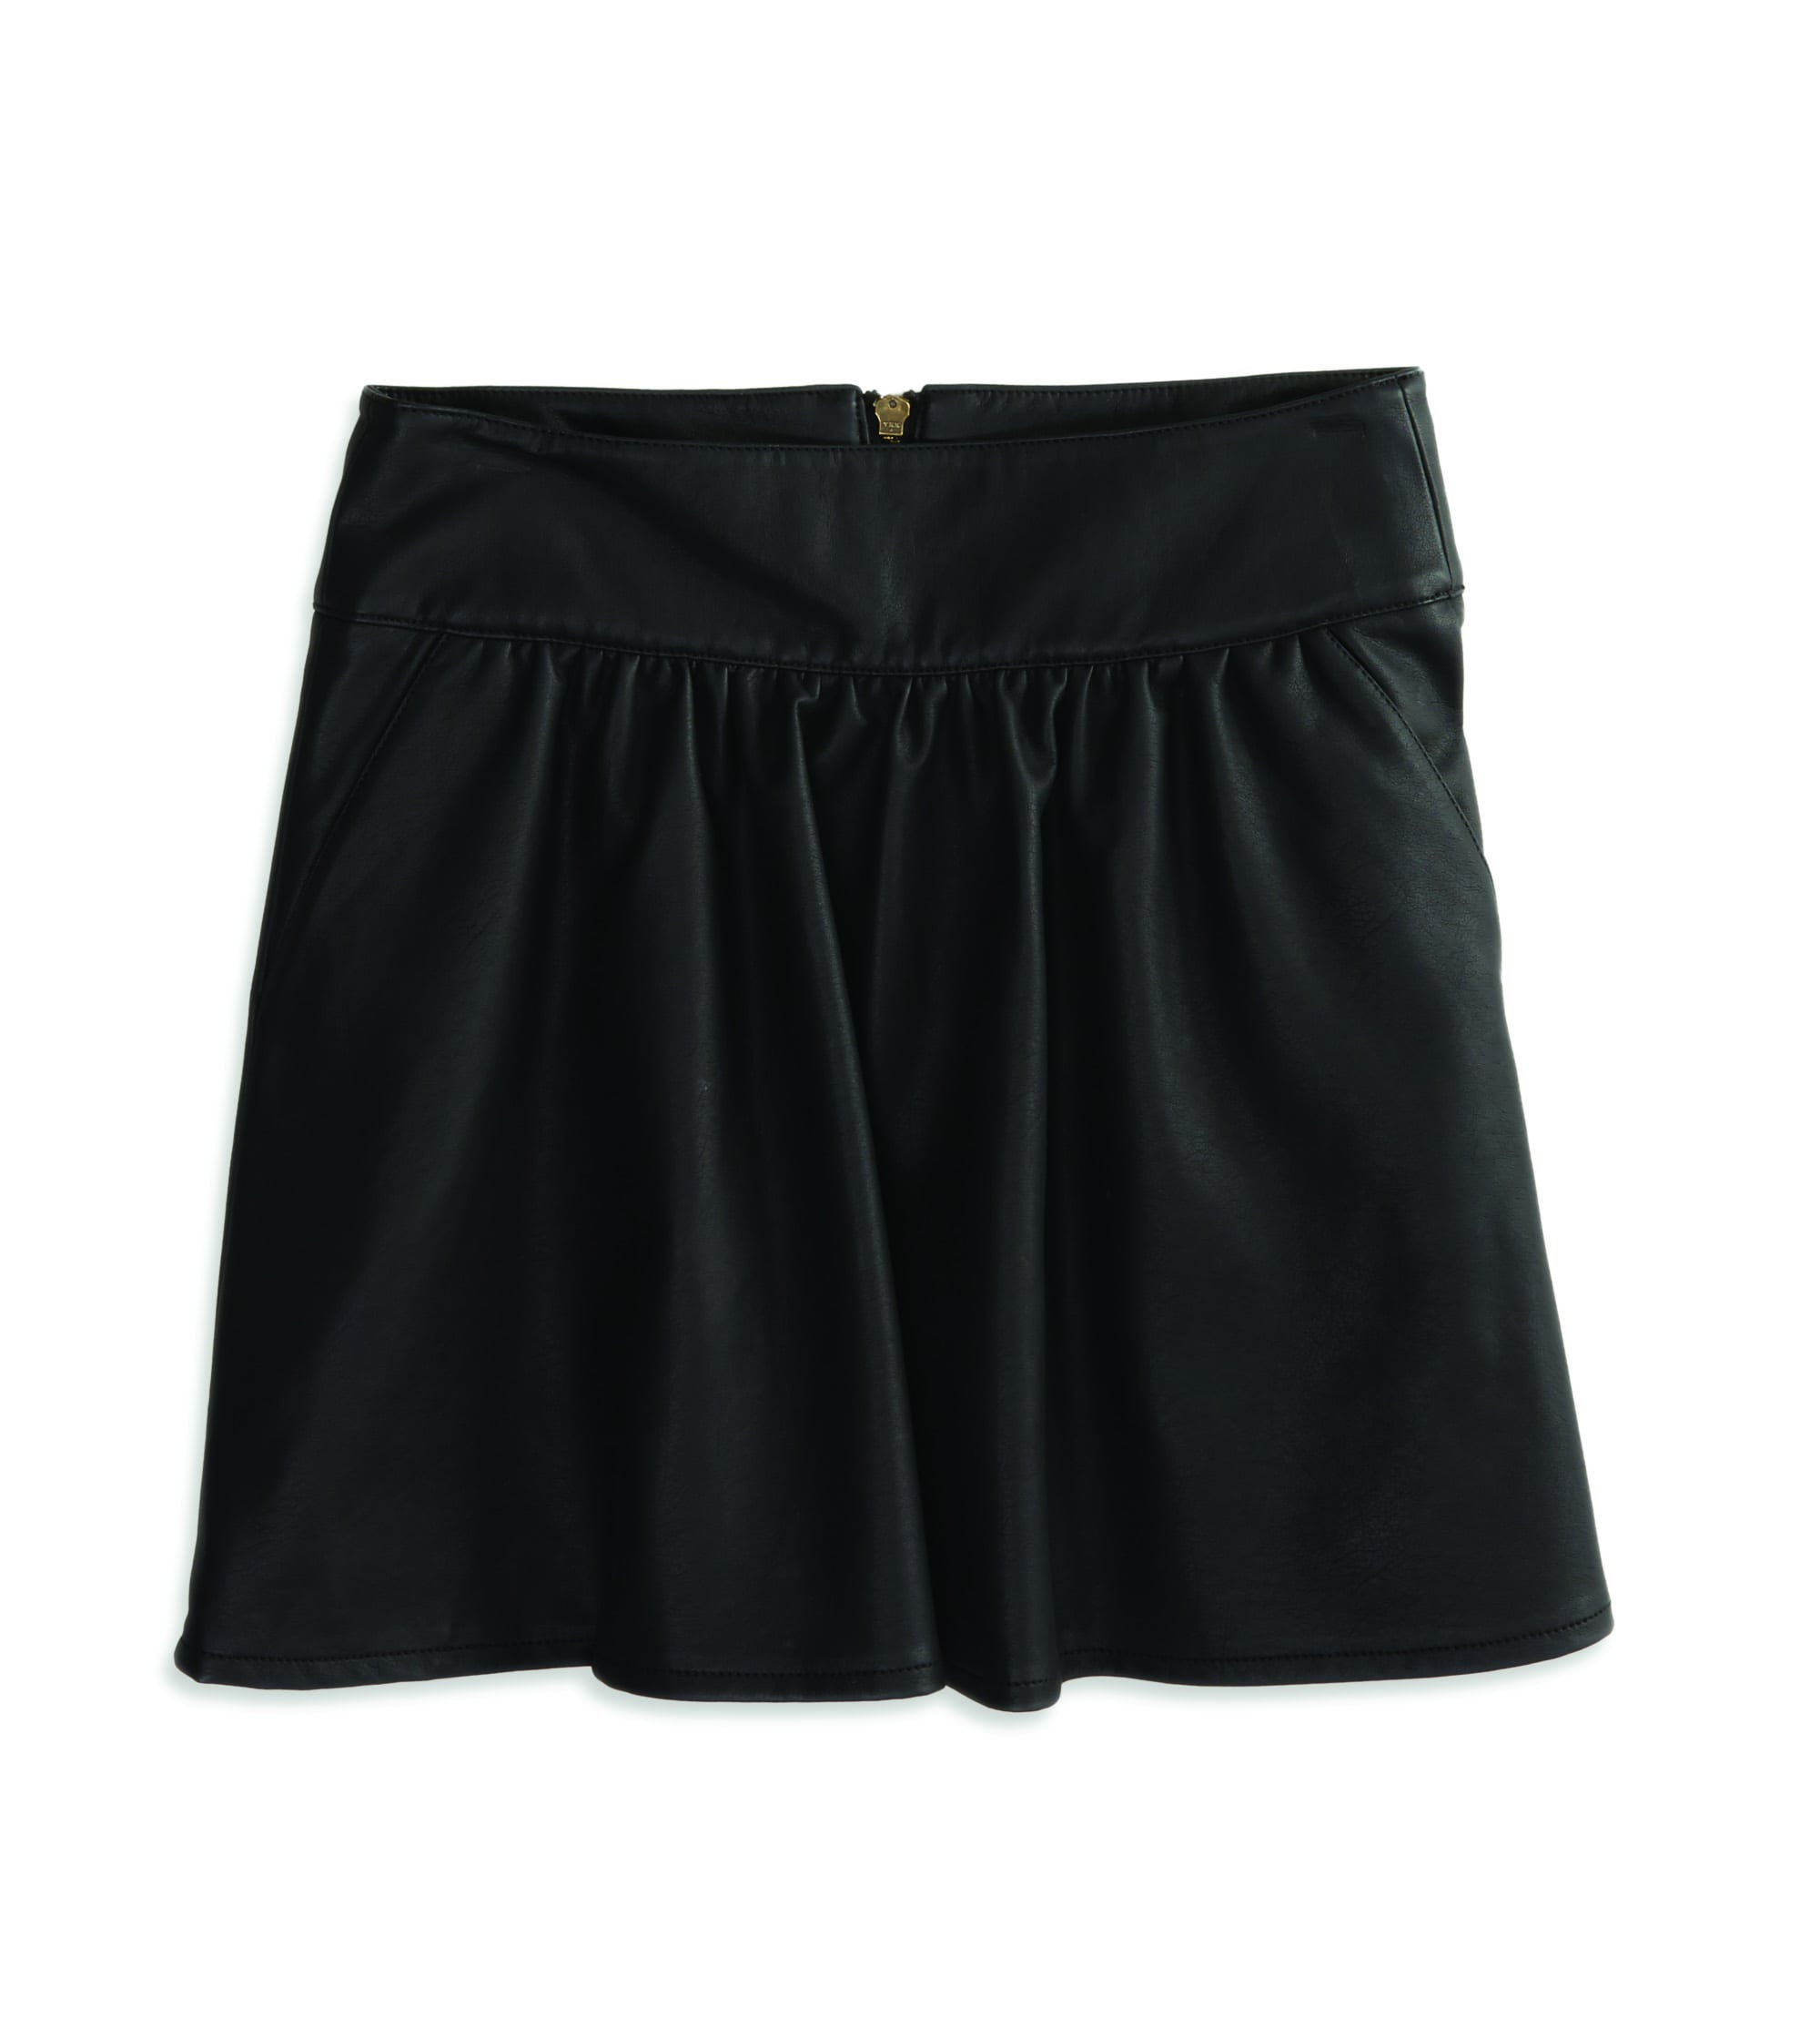 In classic black, American Eagle's simple mini ($50) is sure to fit in with everything already in your wardrobe.